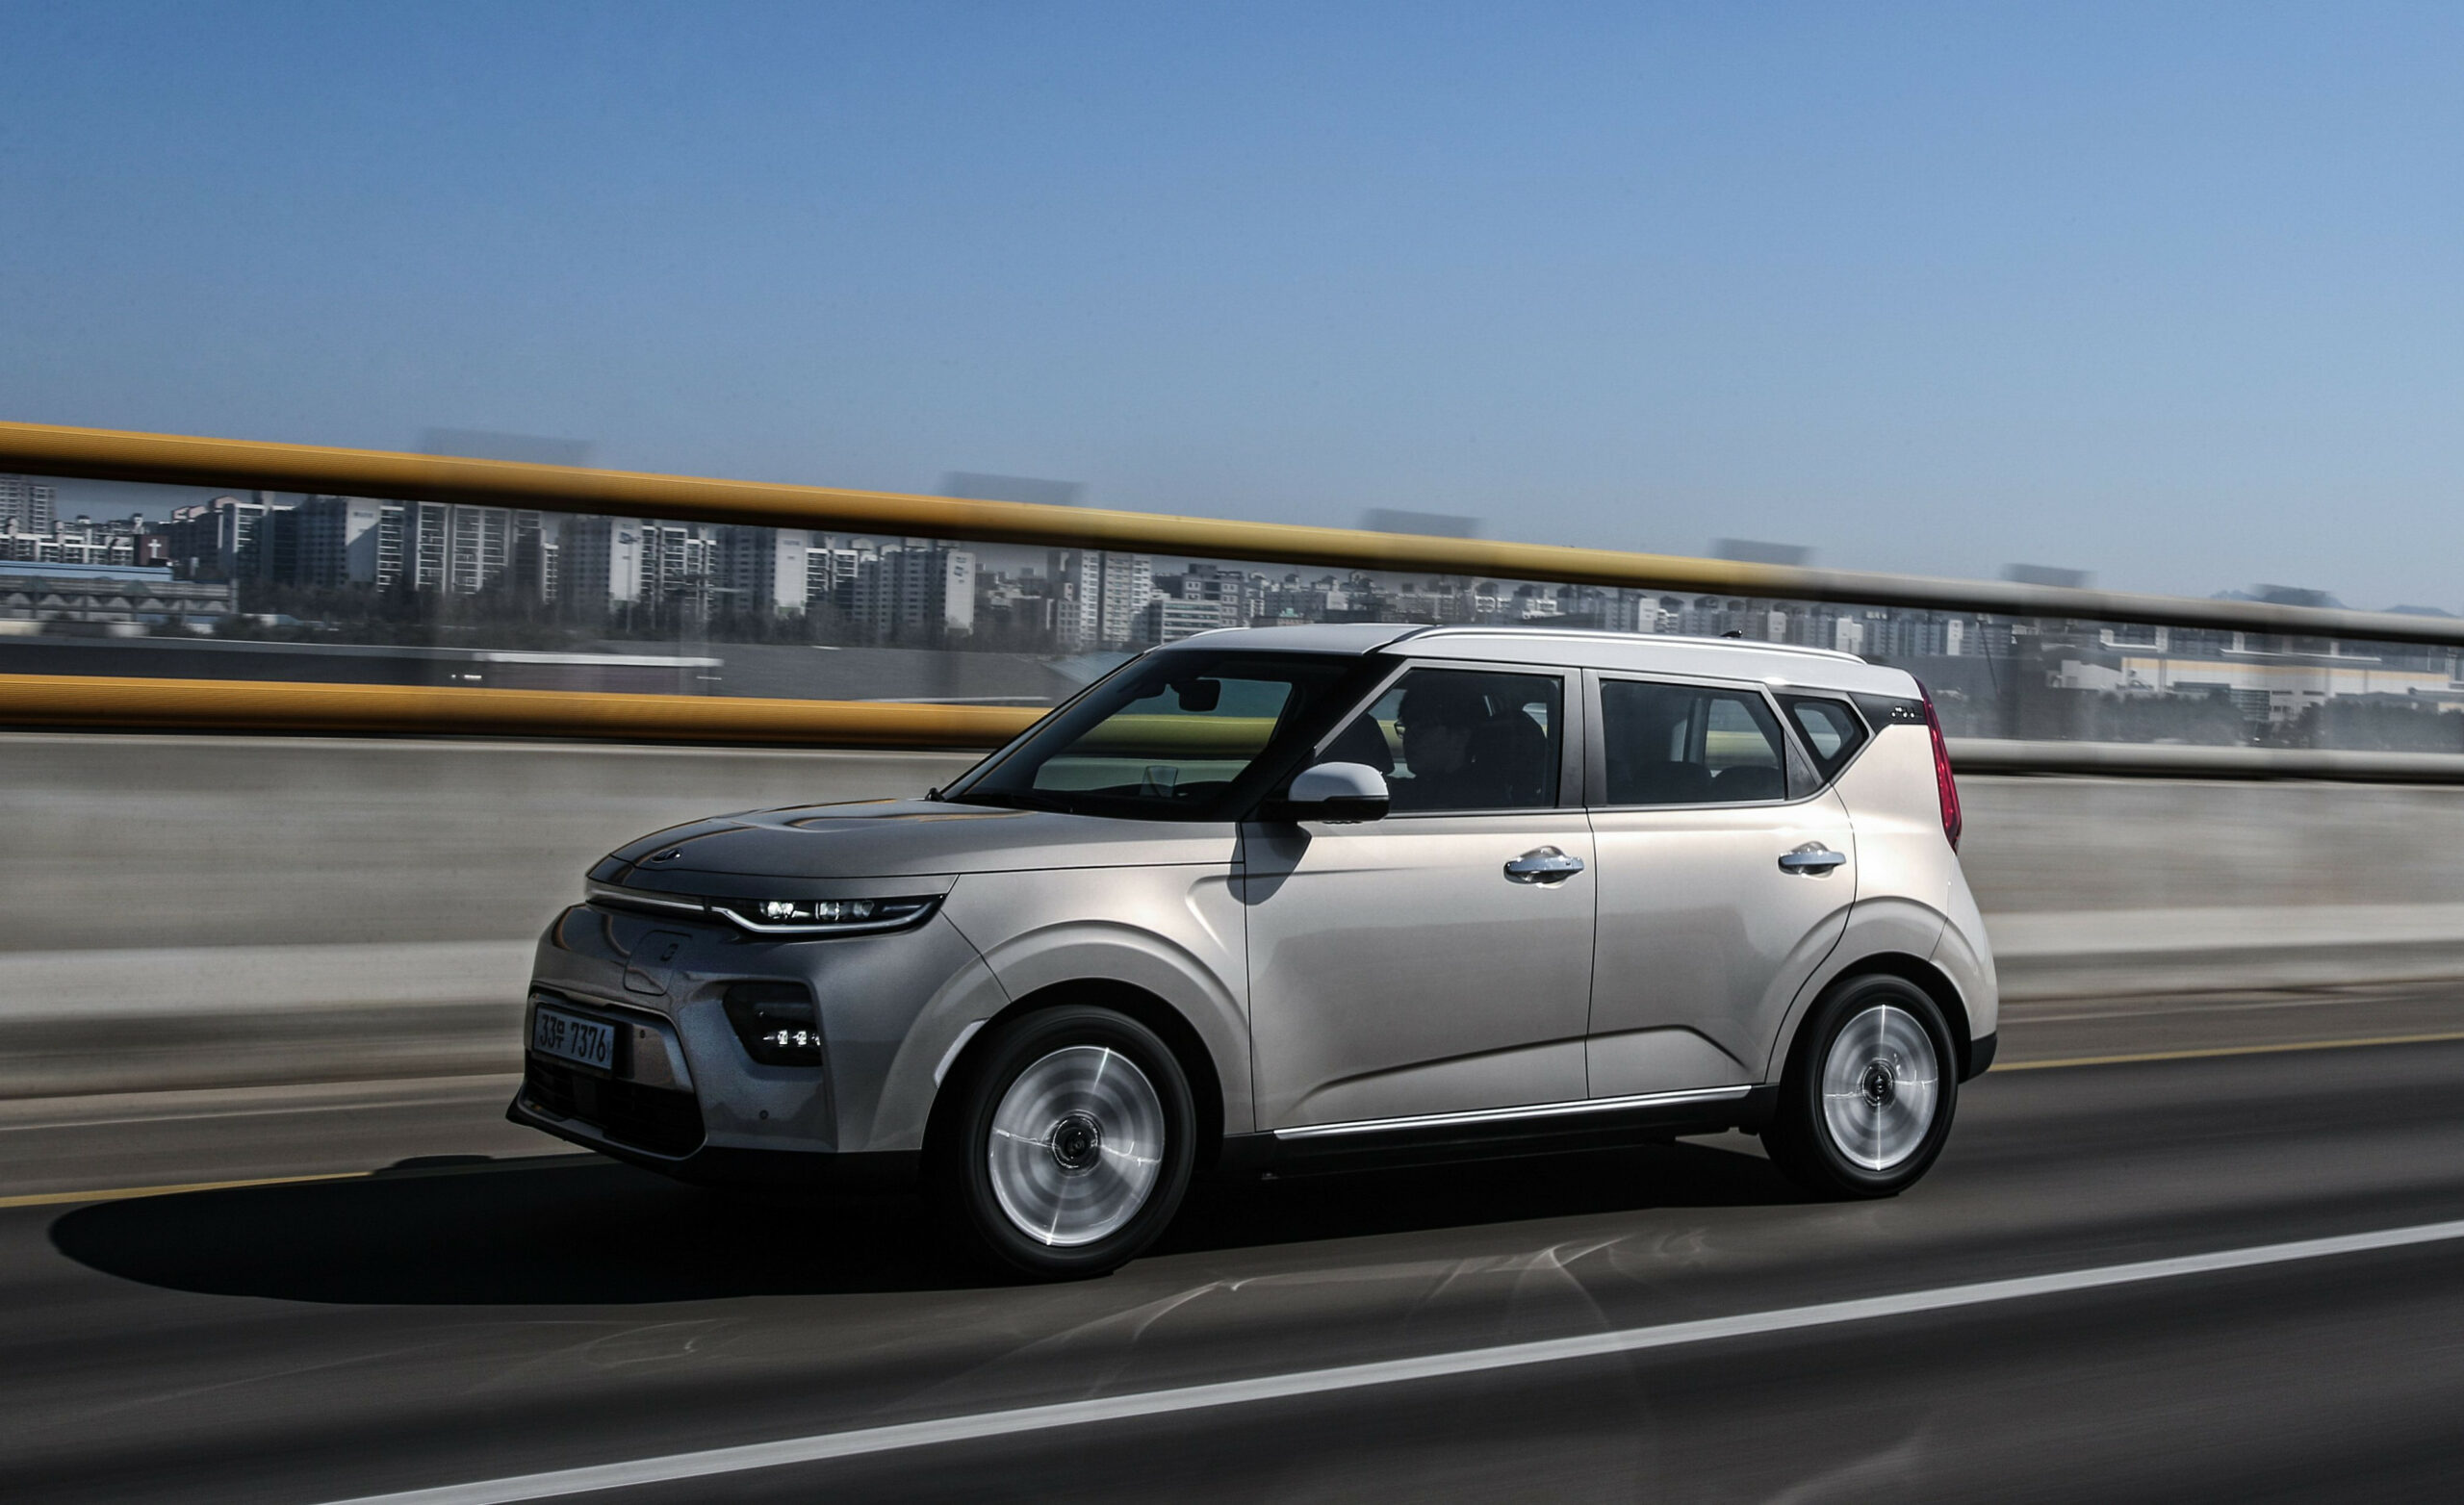 Redesign and Concept 2022 Kia Soul Ev Availability